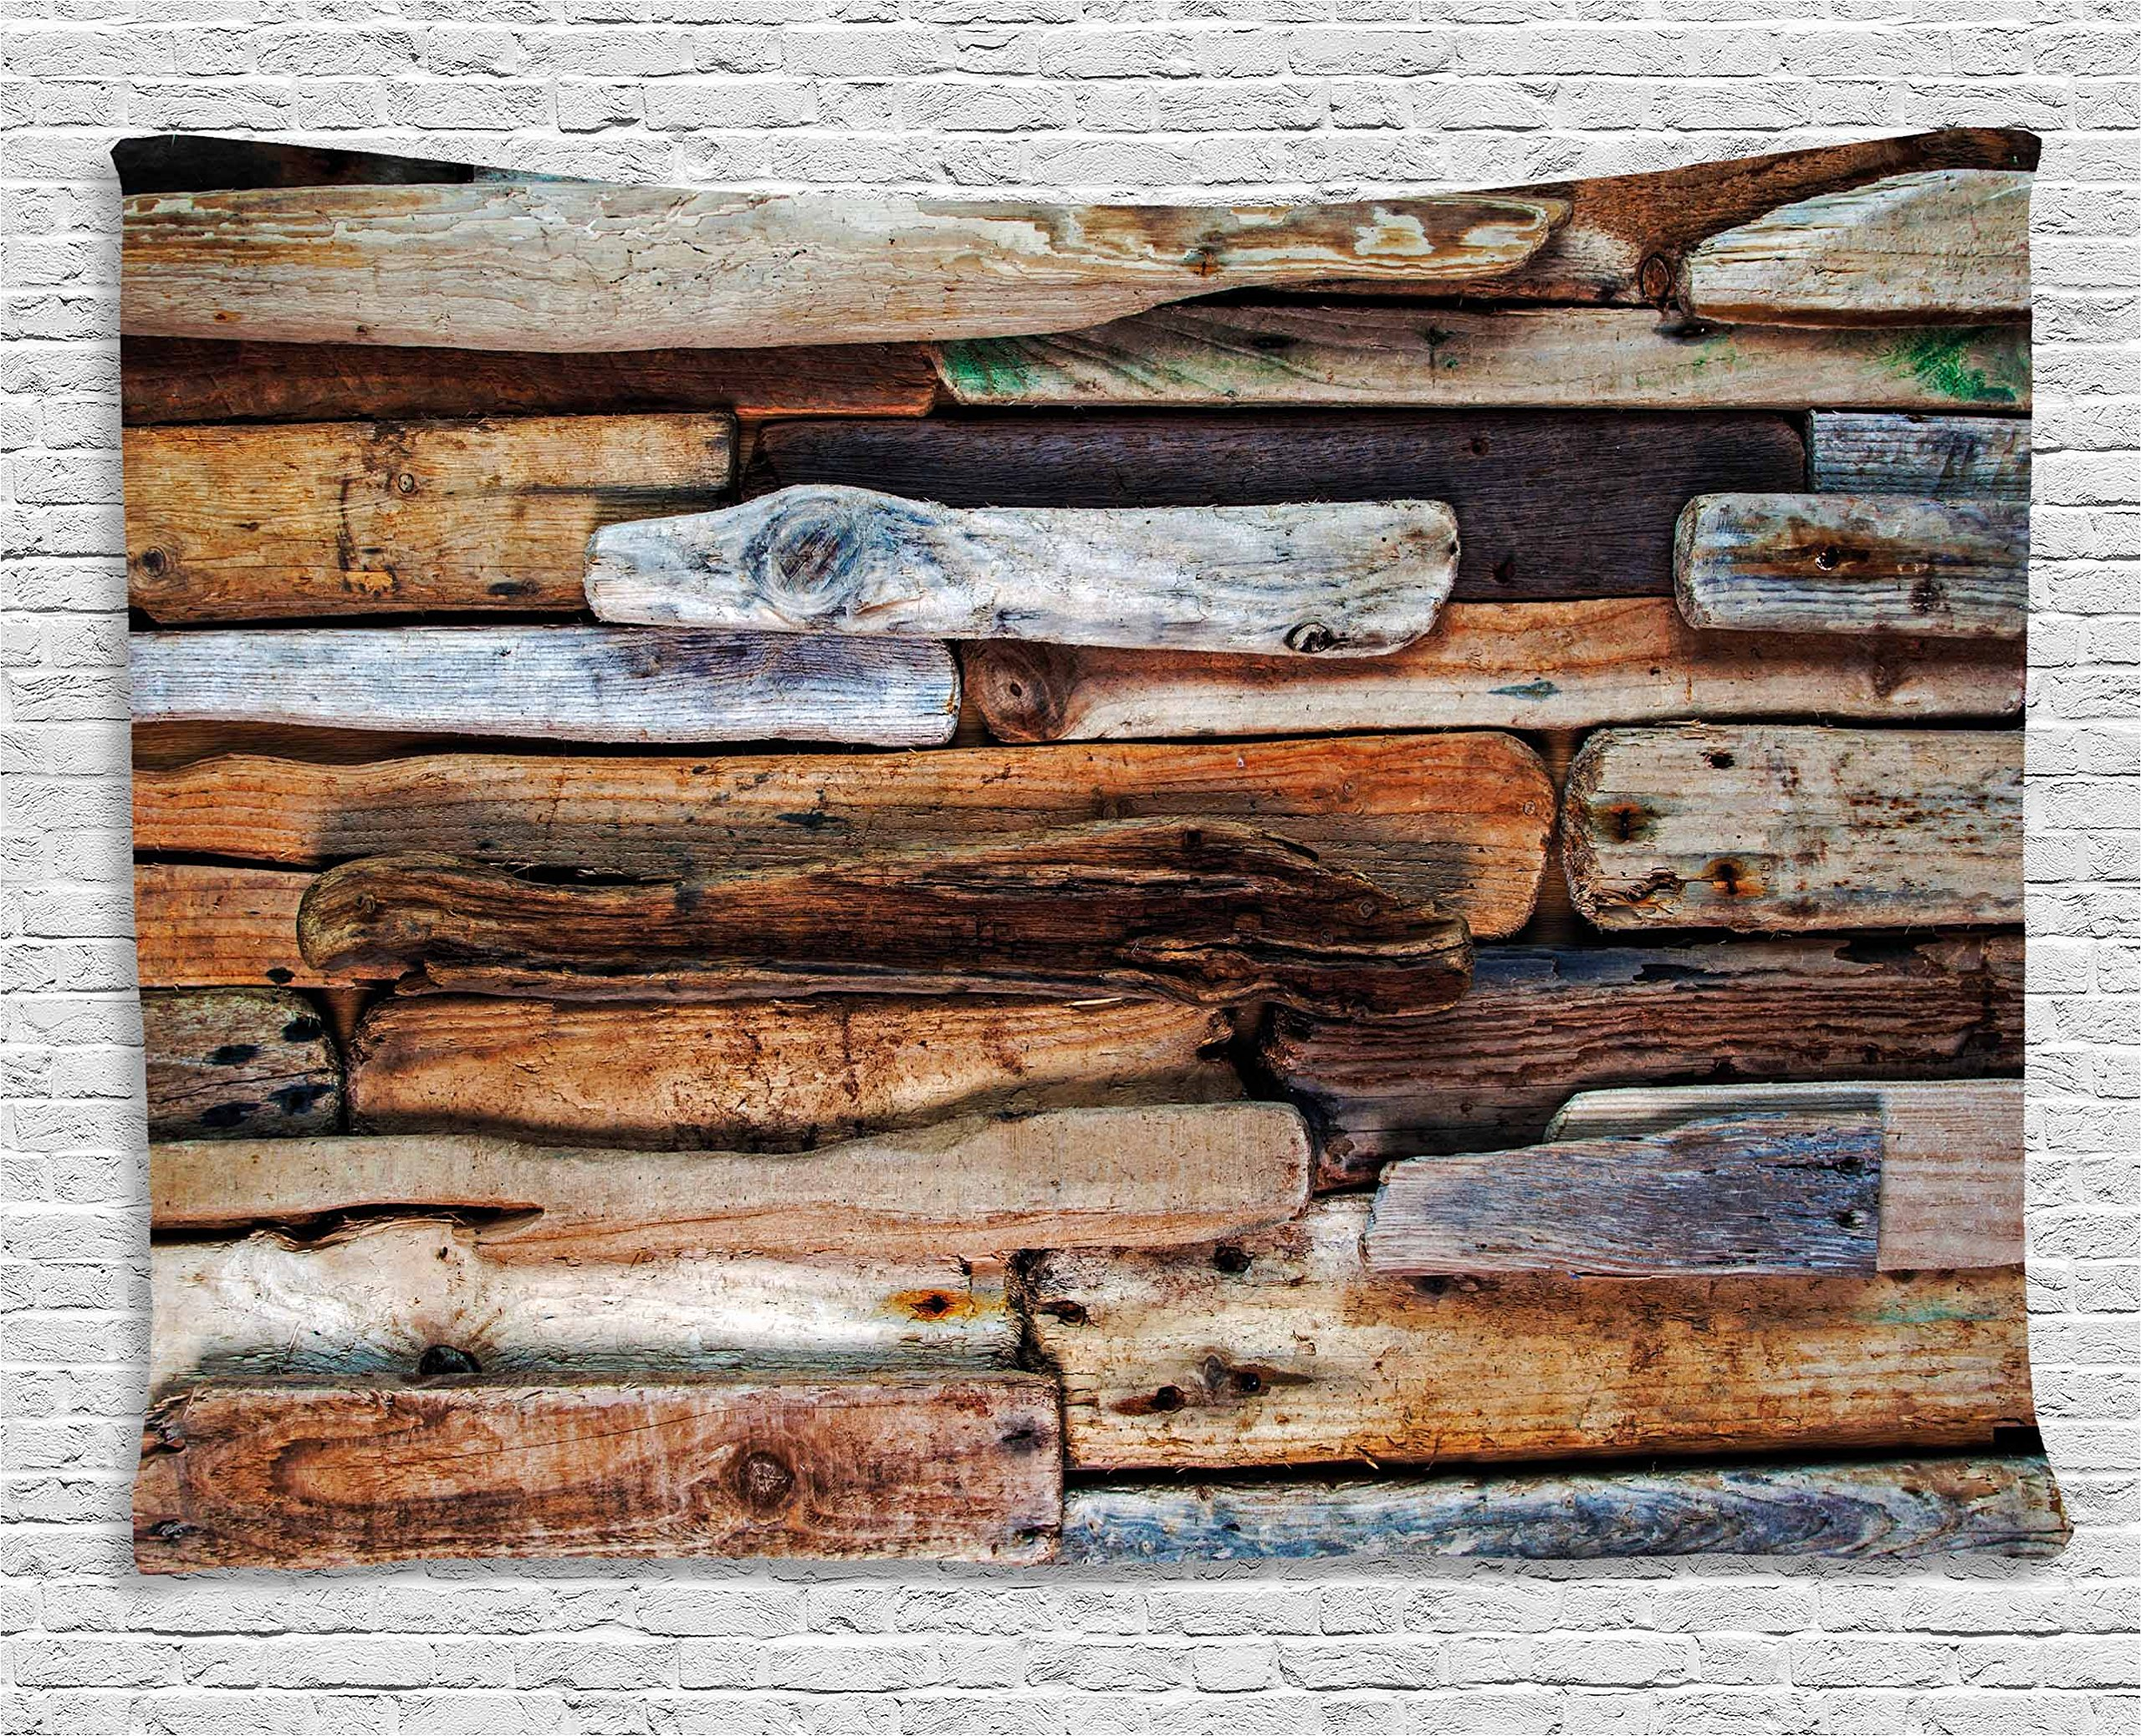 Ambesonne Driftwood Decor Tapestry, Wooden Theme Driftwood Knotty Planks Vintage Decorative Design Digital Image, Wall Hanging Bedroom Living Room Dorm, 80 W X 60 L inches, Brown